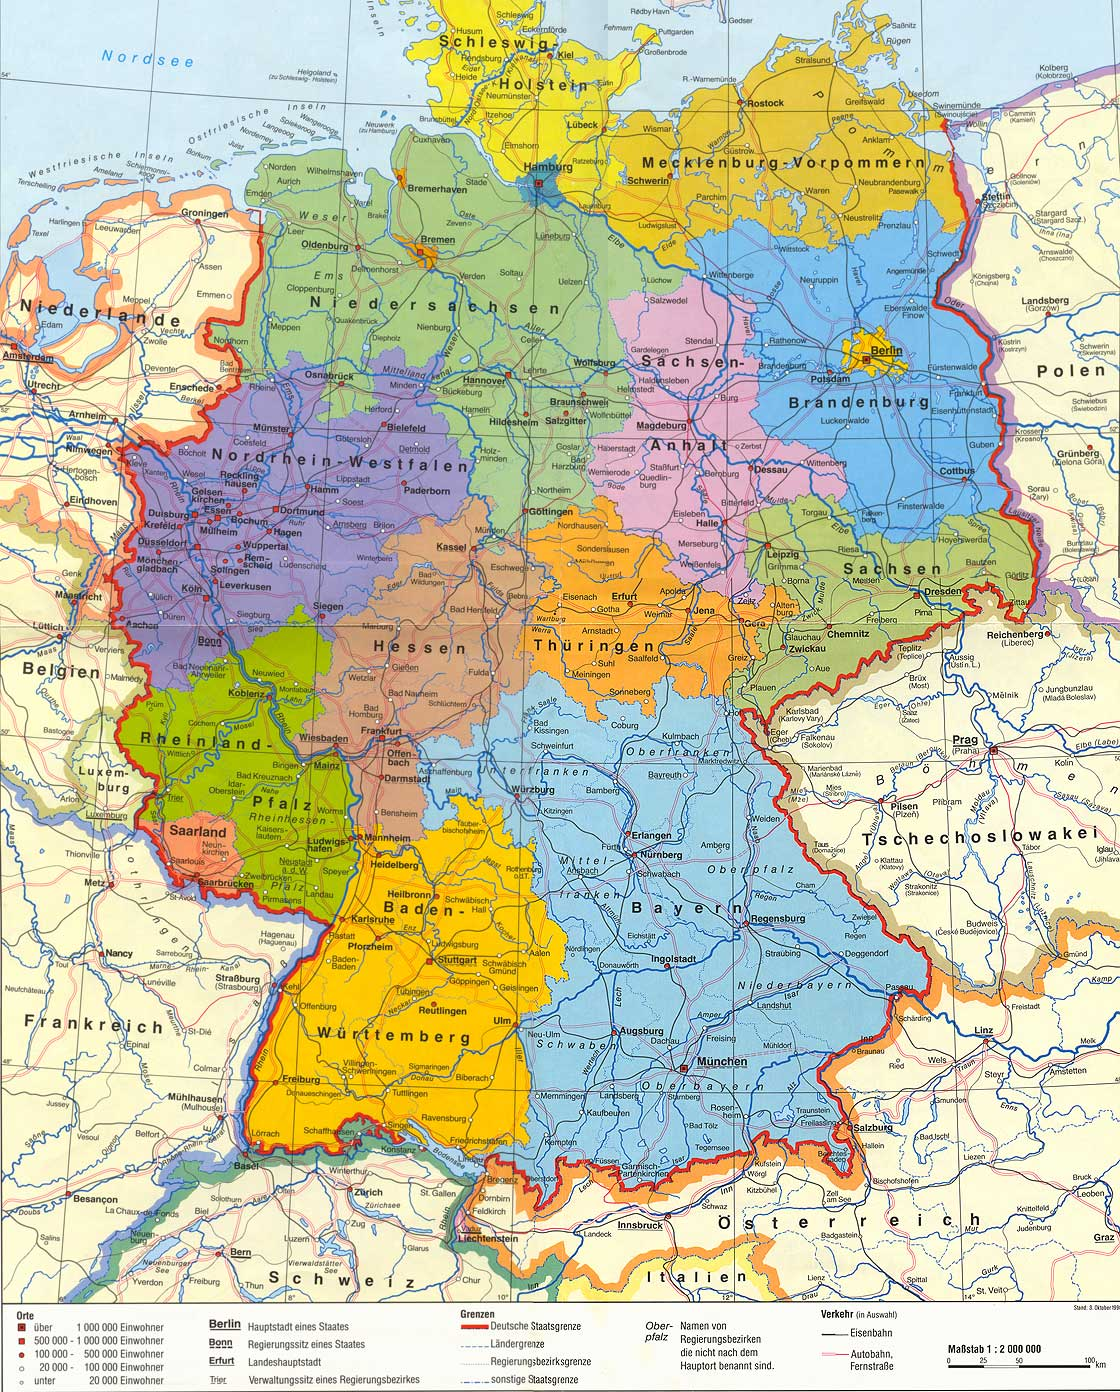 Heritage Sites in Germany 2007 - Full size